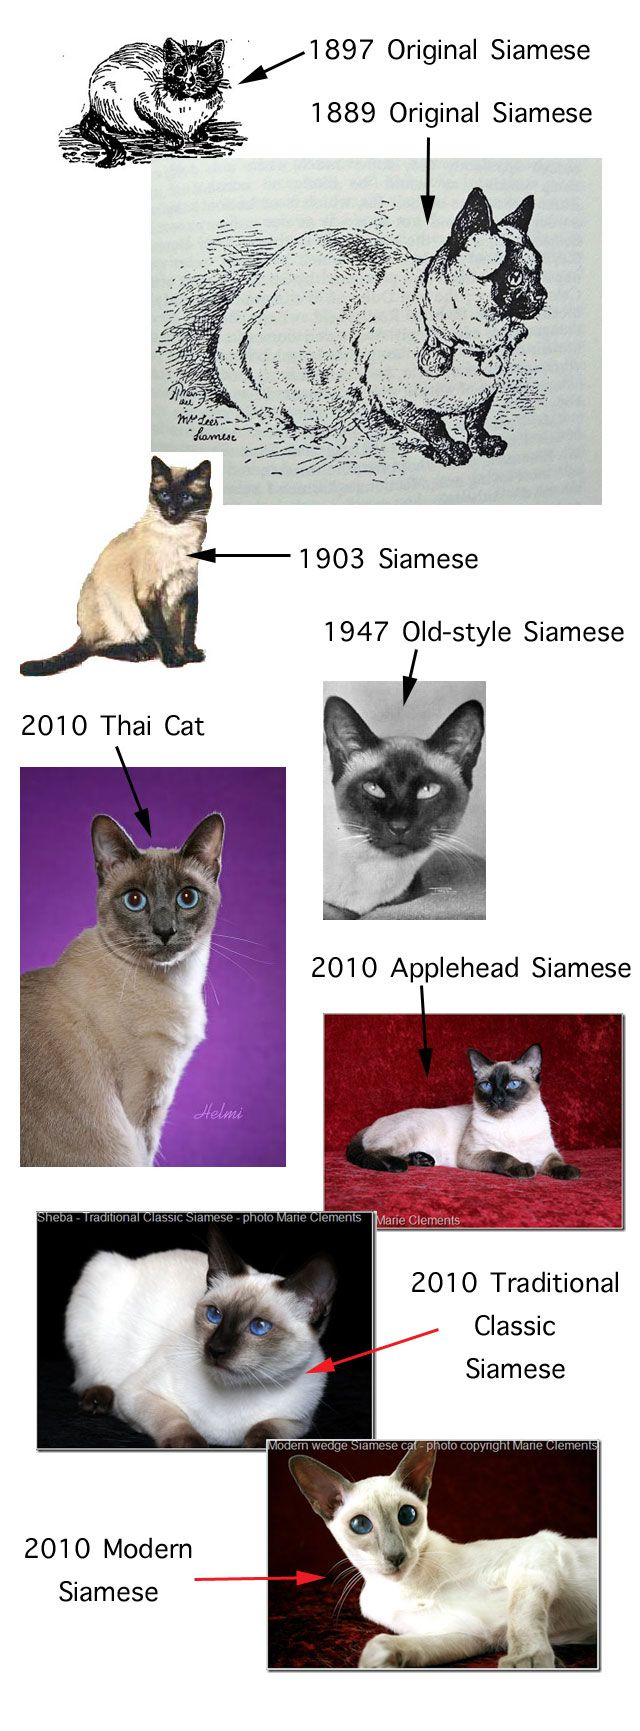 Siamese cat types--- ()()  1903 Siamese-1947-old style Siamese.2010 Thai Cat + more ()()